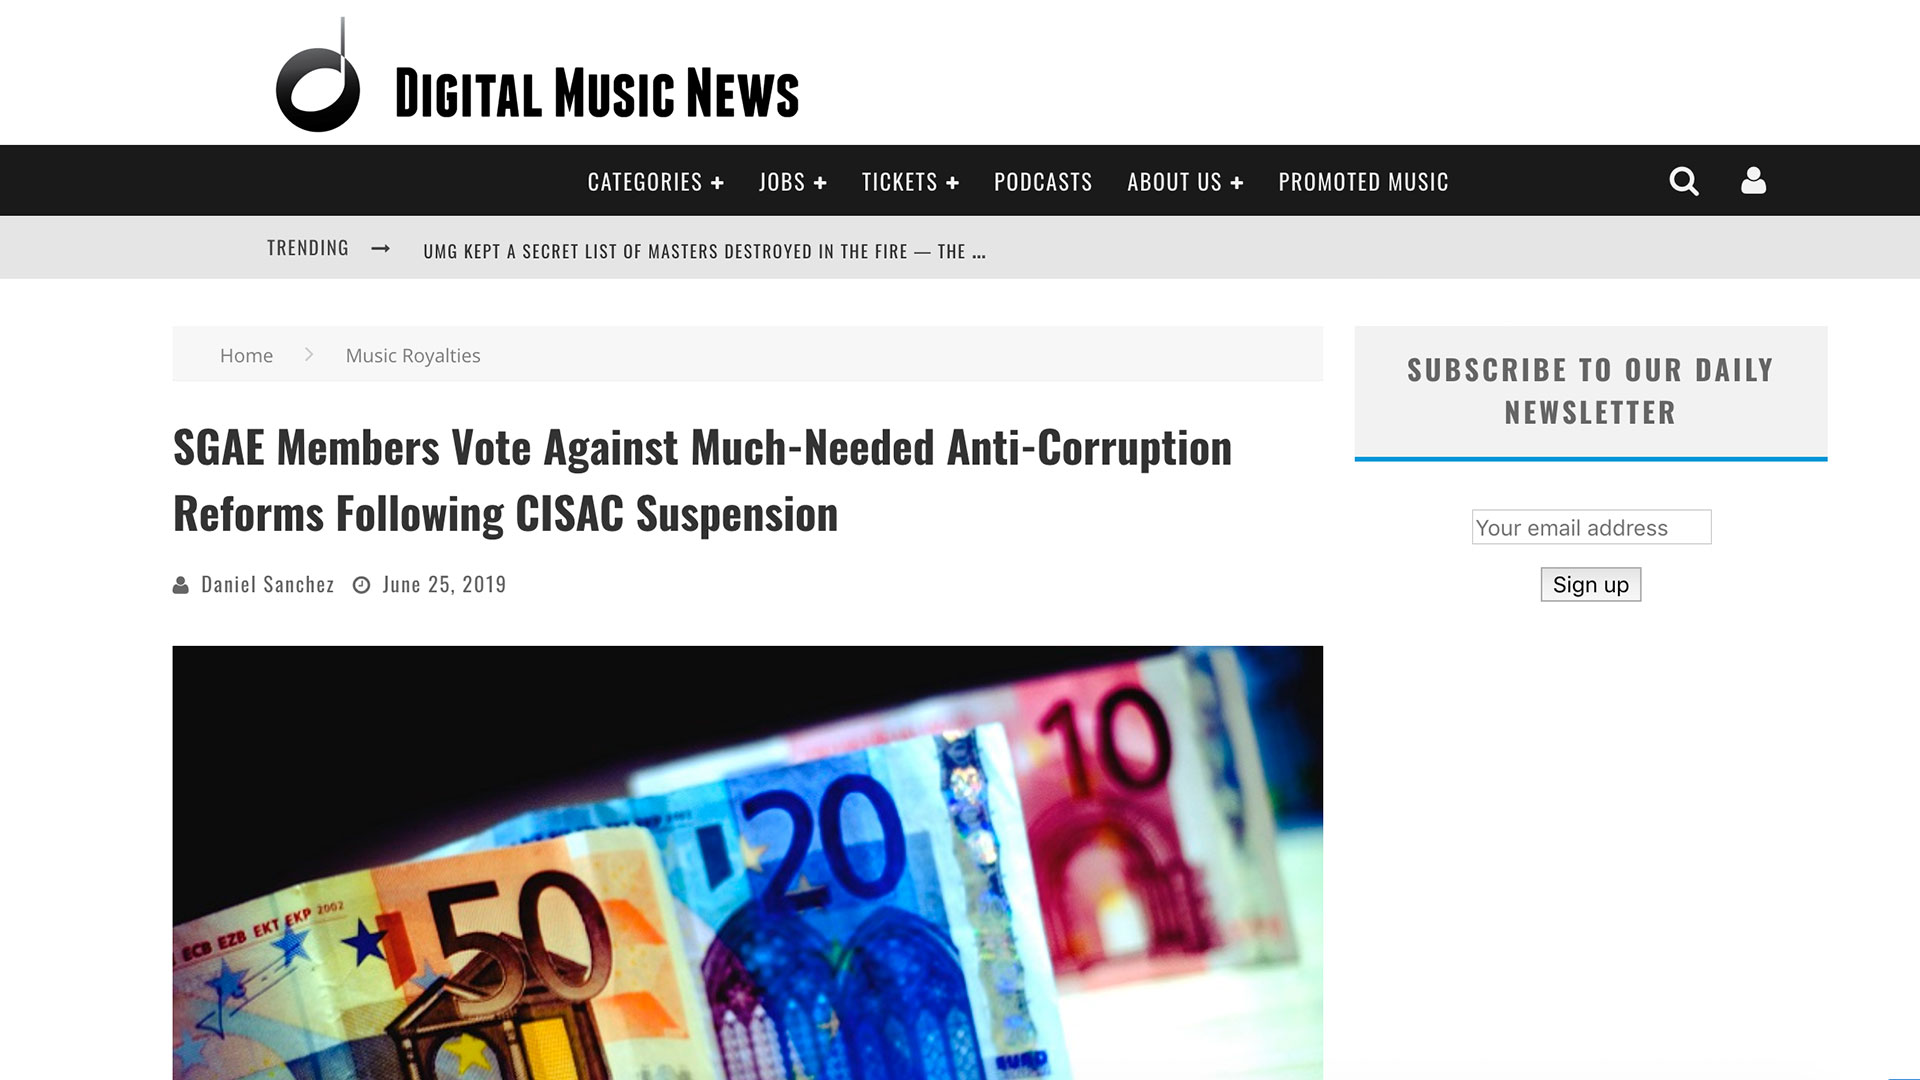 Fairness Rocks News SGAE Members Vote Against Much-Needed Anti-Corruption Reforms Following CISAC Suspension